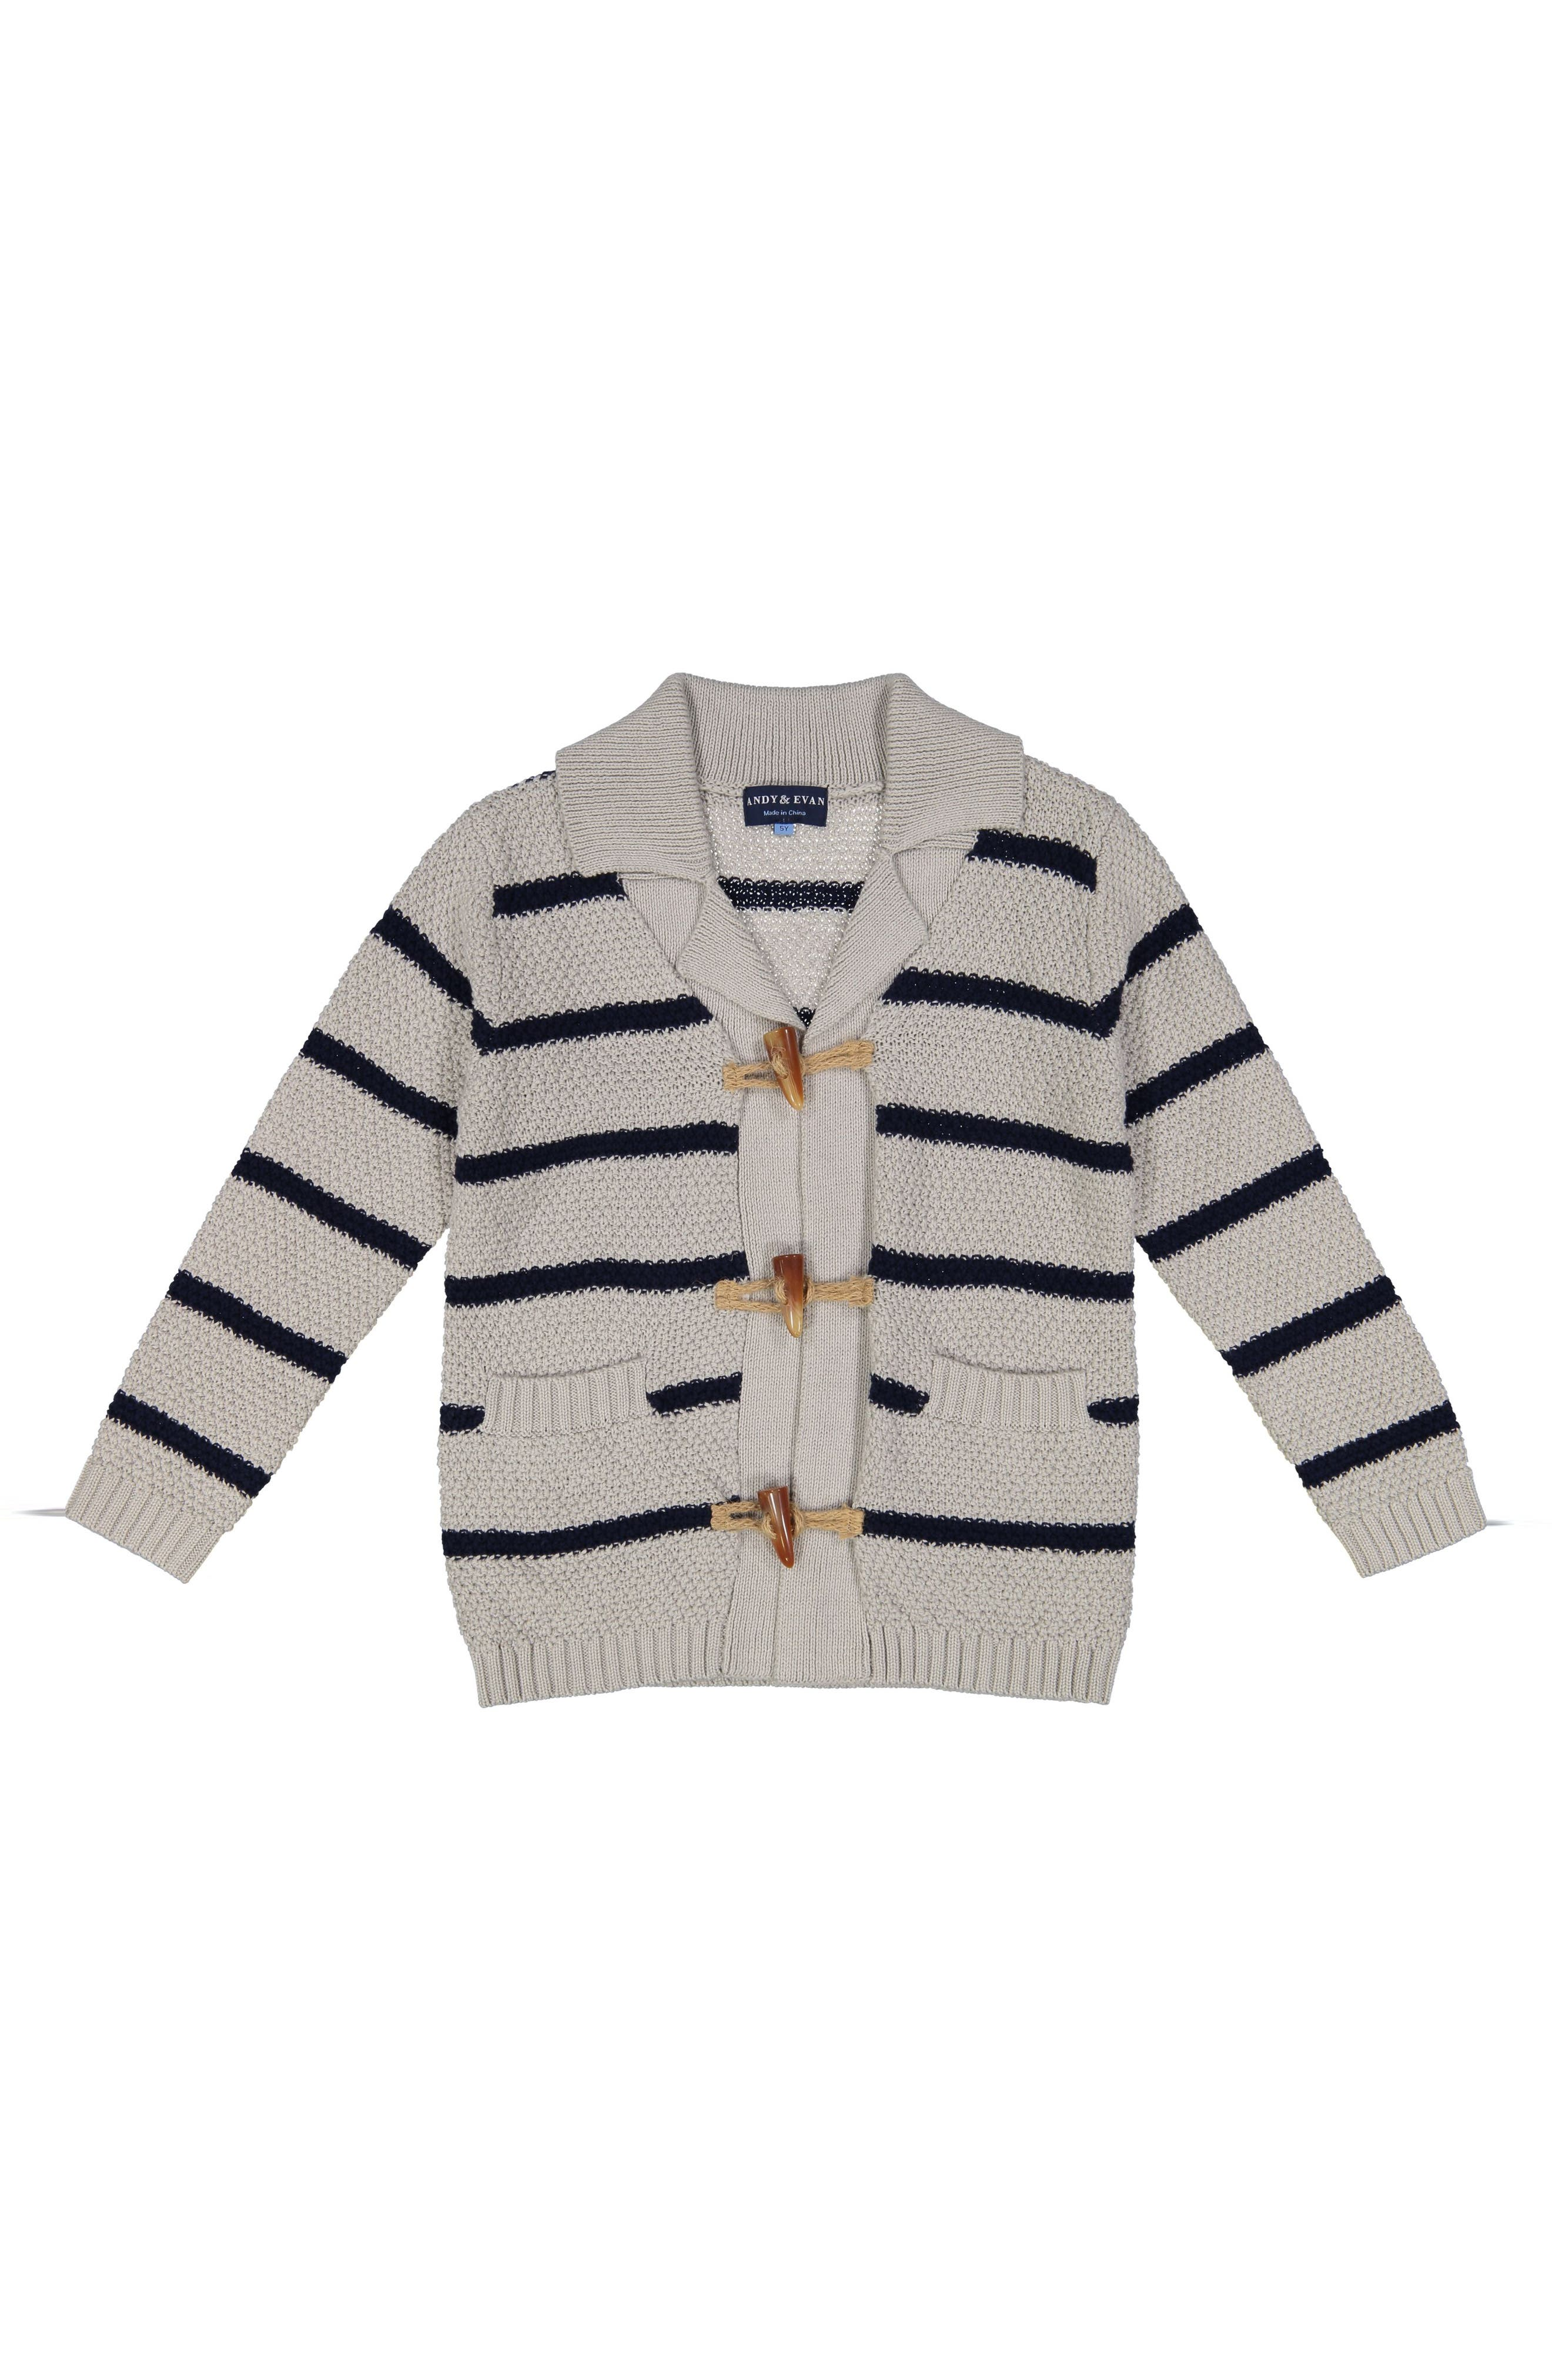 Alternate Image 1 Selected - Andy & Evan Stripe Toggle Cardigan (Baby Boys)